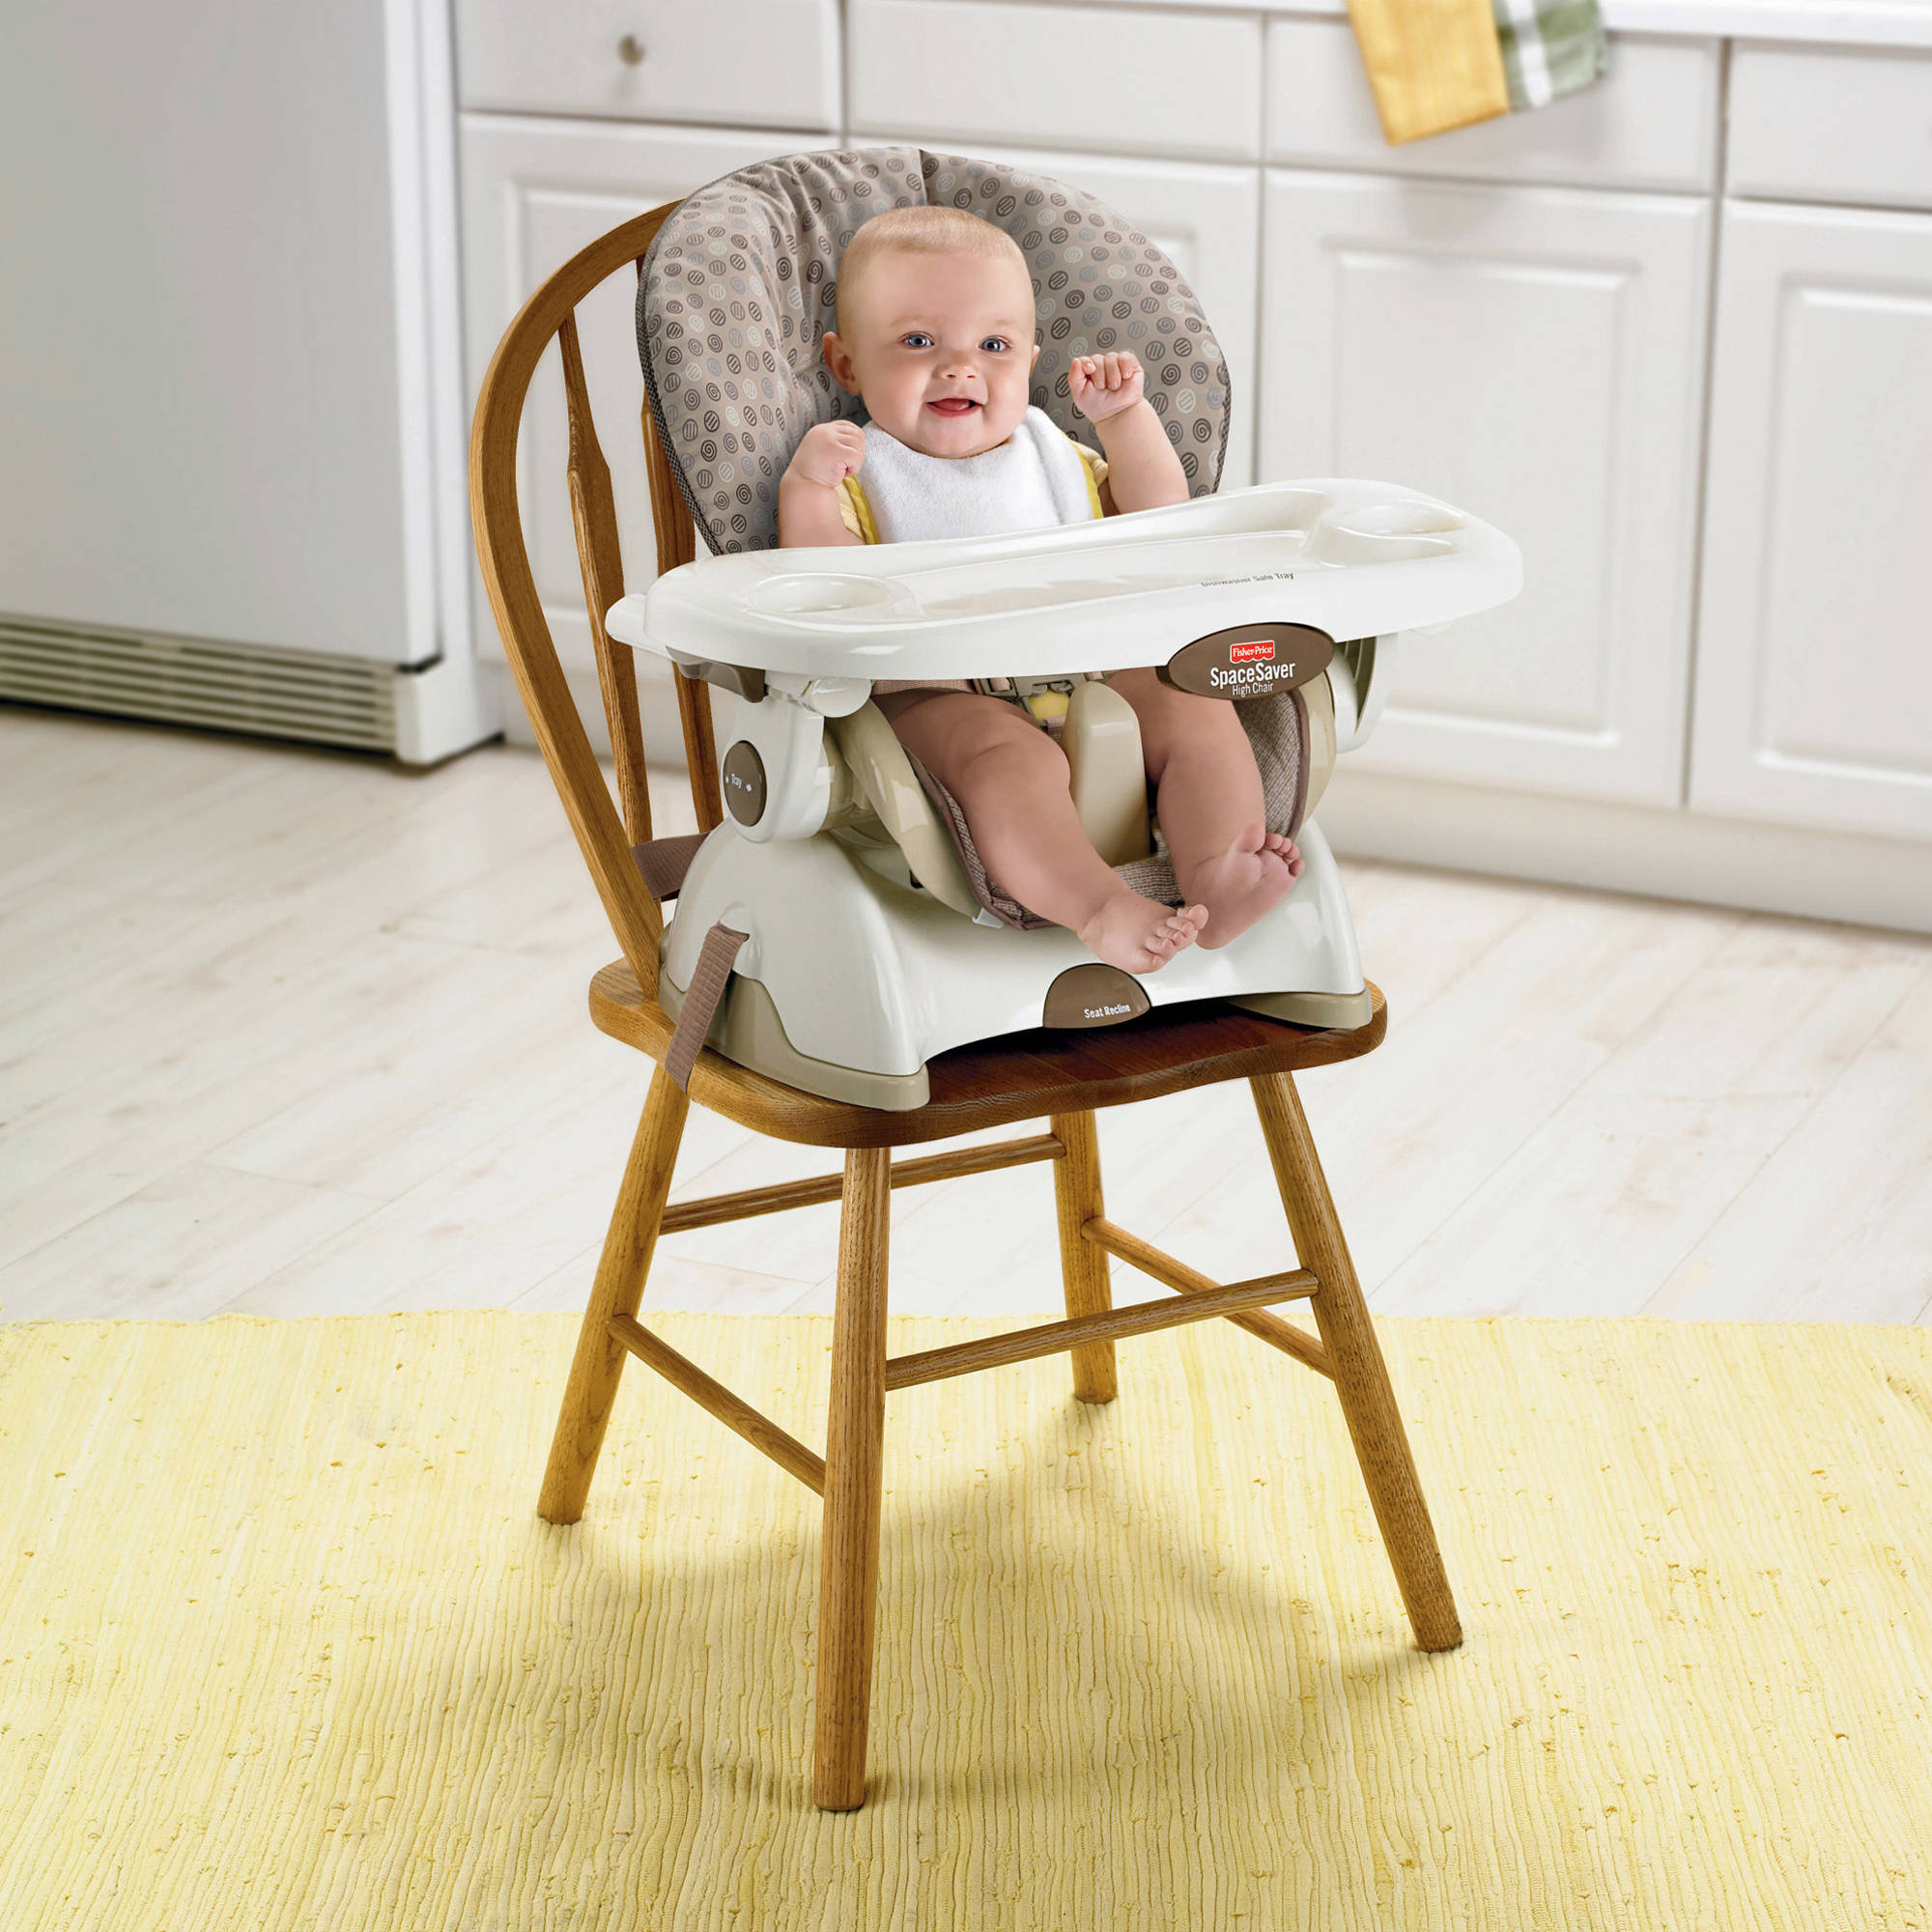 Cheap Baby High Chair High Chairs Walmart Amusing Baby High Chair With Wheels